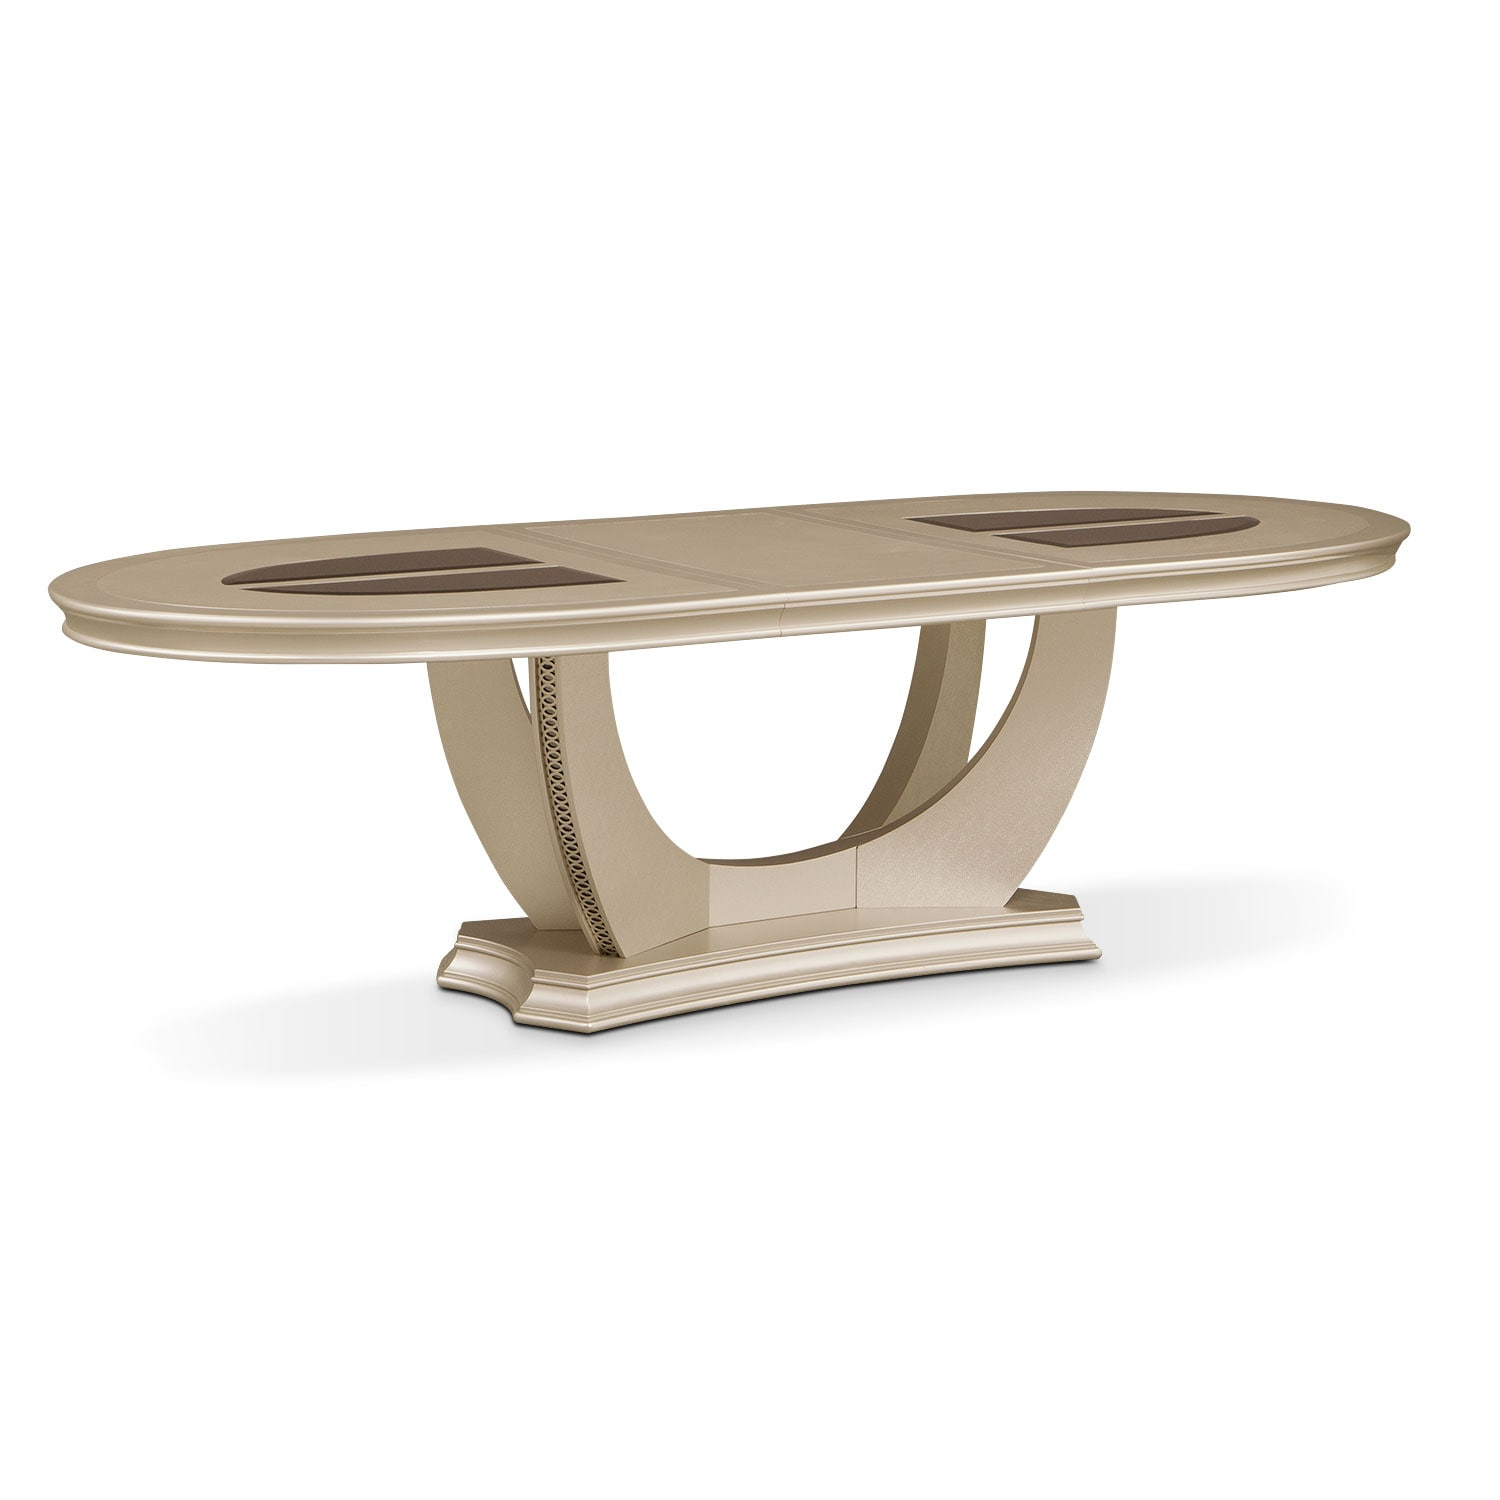 Dining Room Furniture - Allegro Oval Dining Table